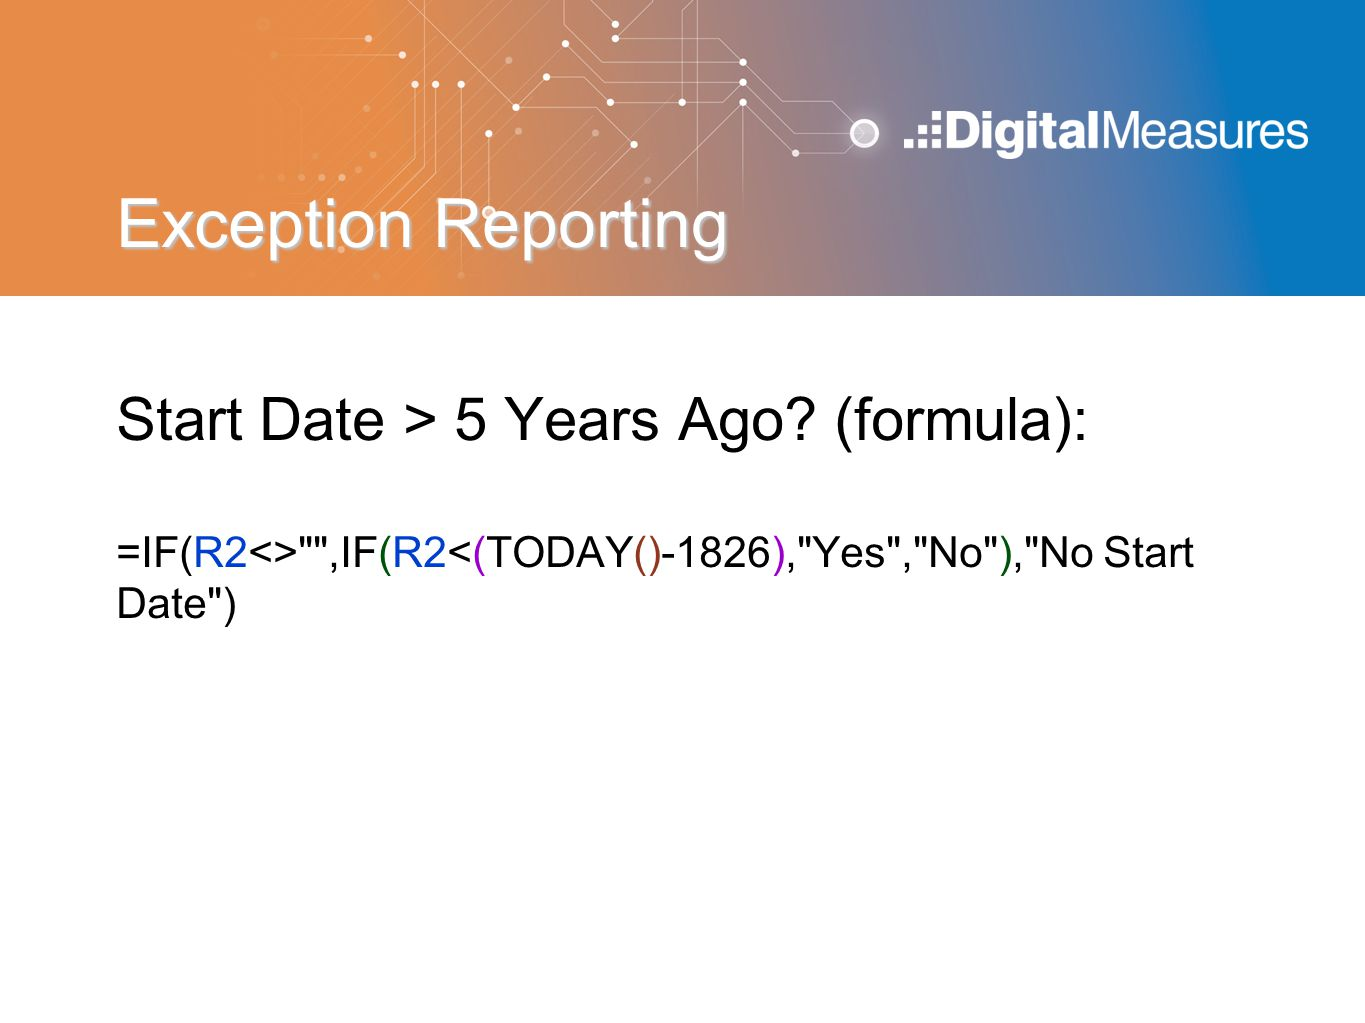 Exception Reporting Start Date > 5 Years Ago (formula):